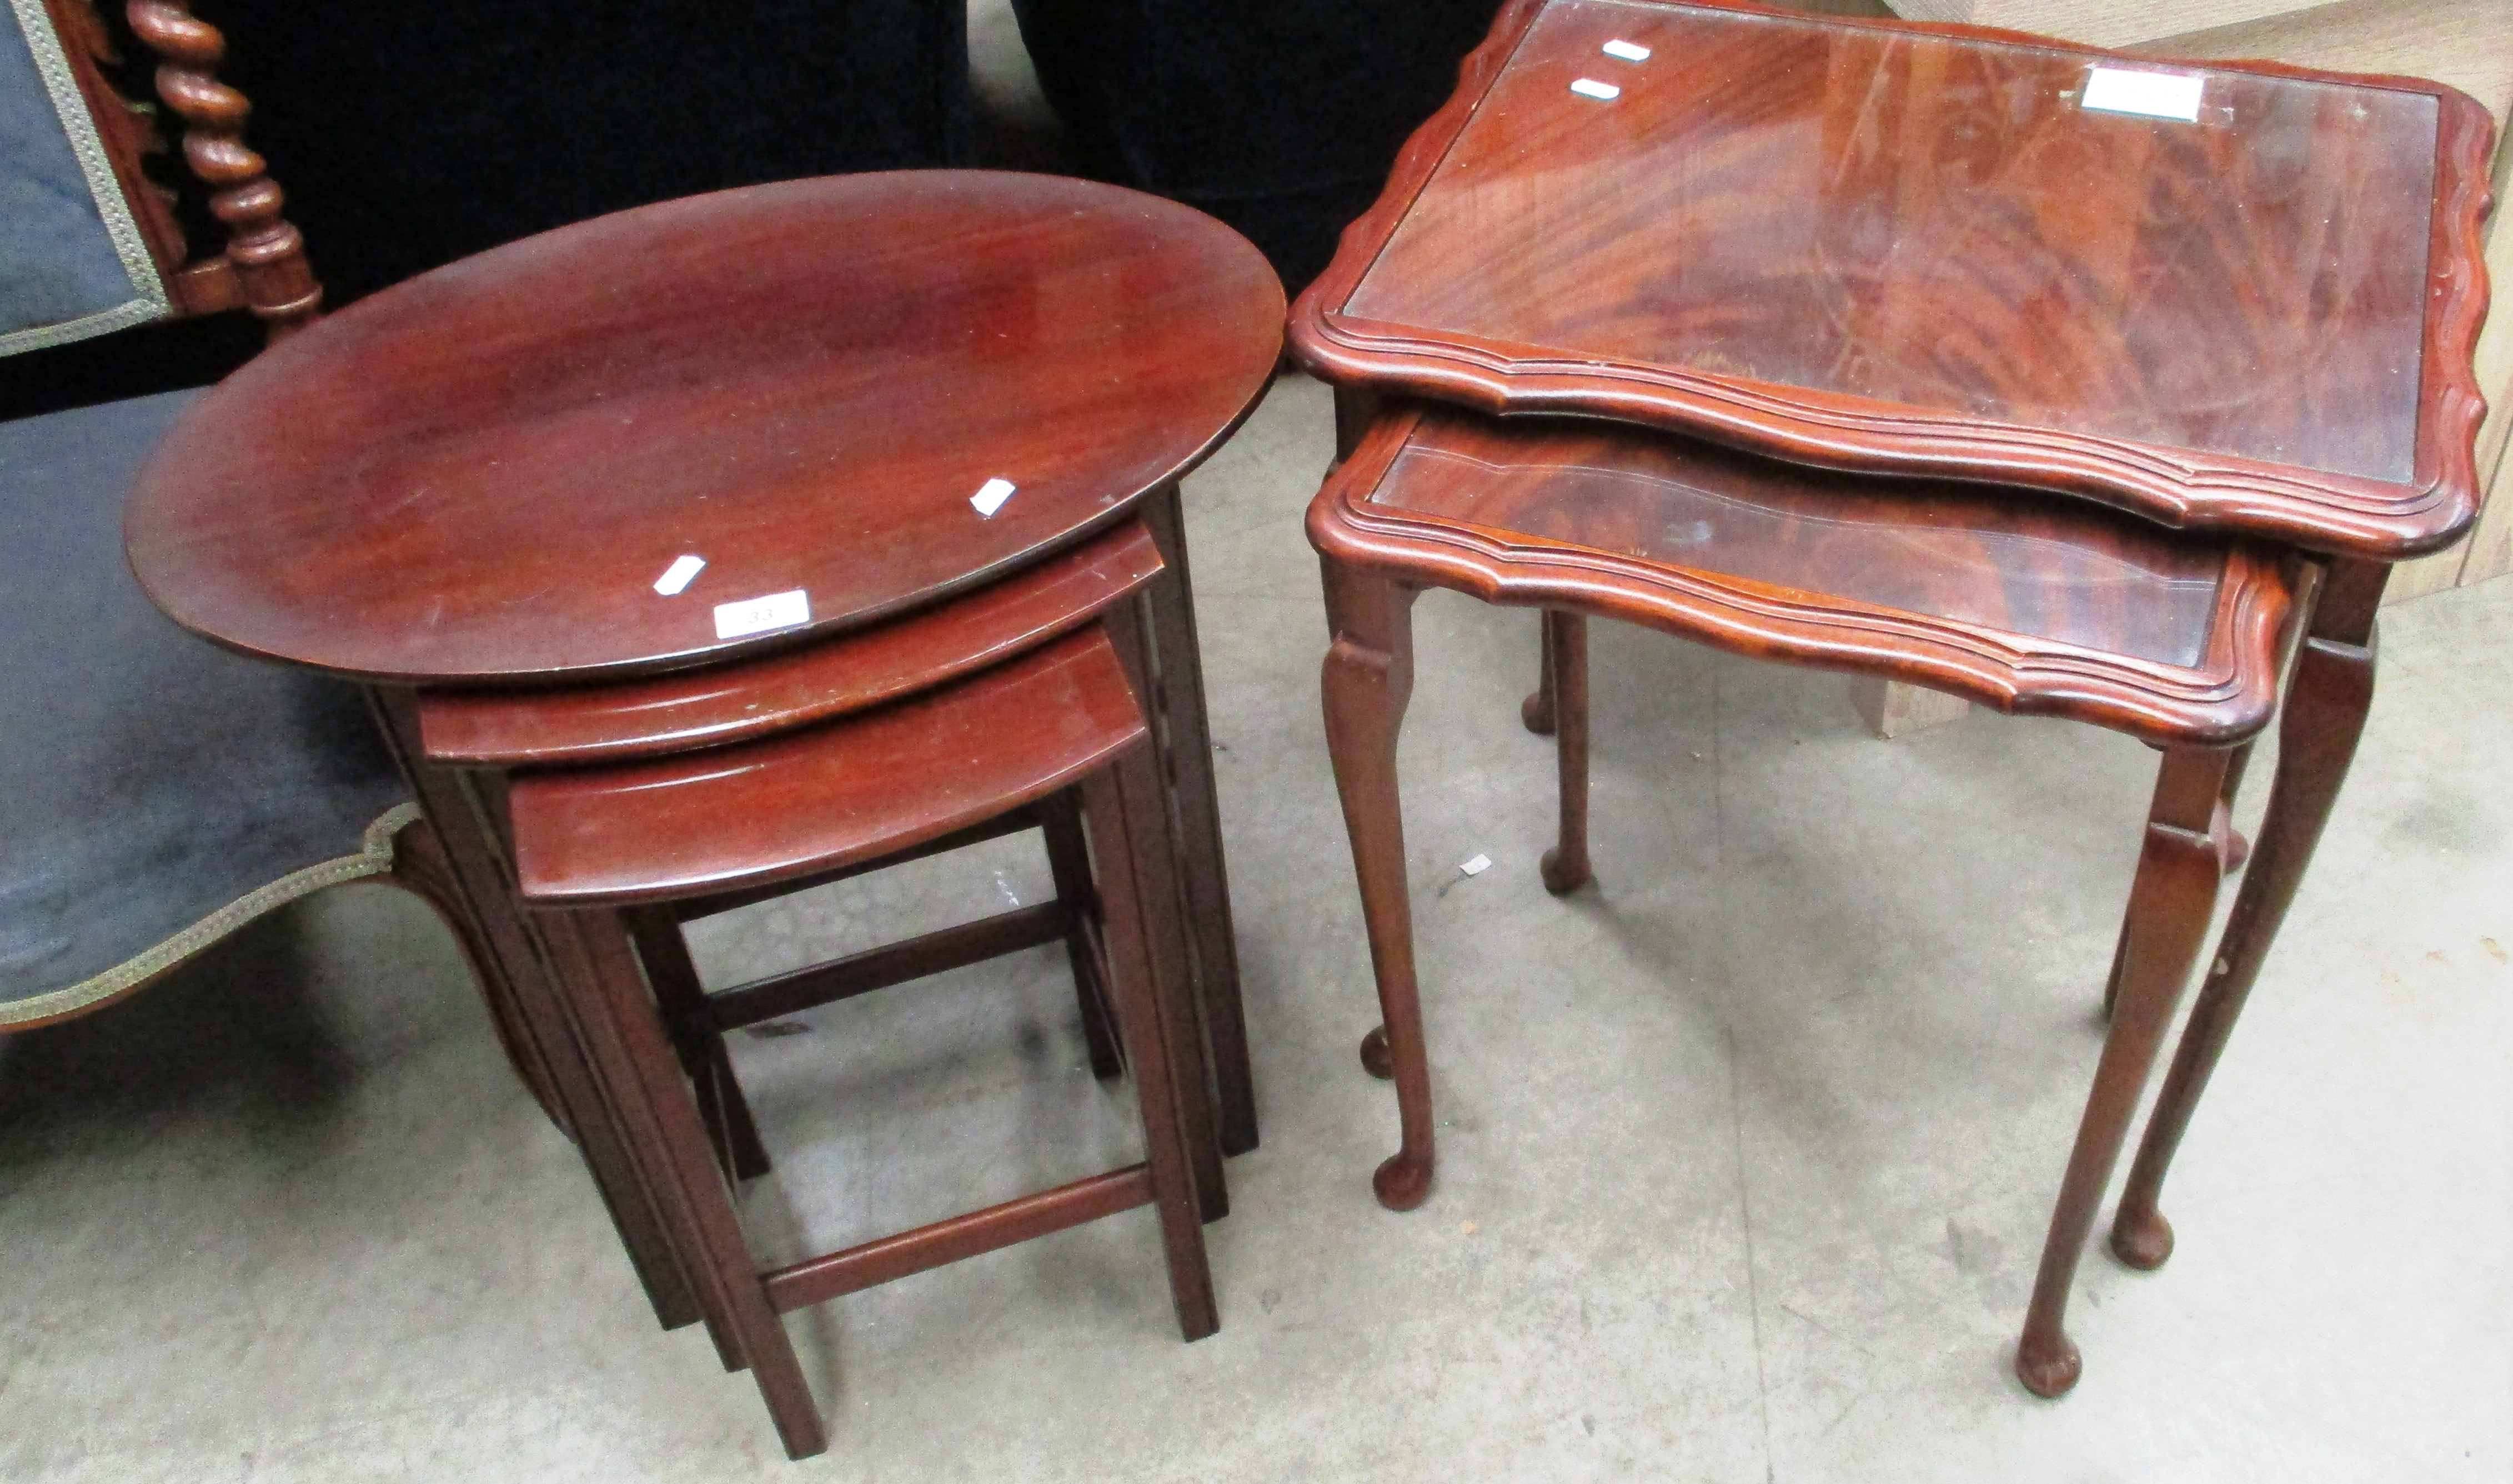 Lot 33 - A nest of 3 mahogany coffee tables and a nest of 2 walnut coffee tables with glass tops (2)